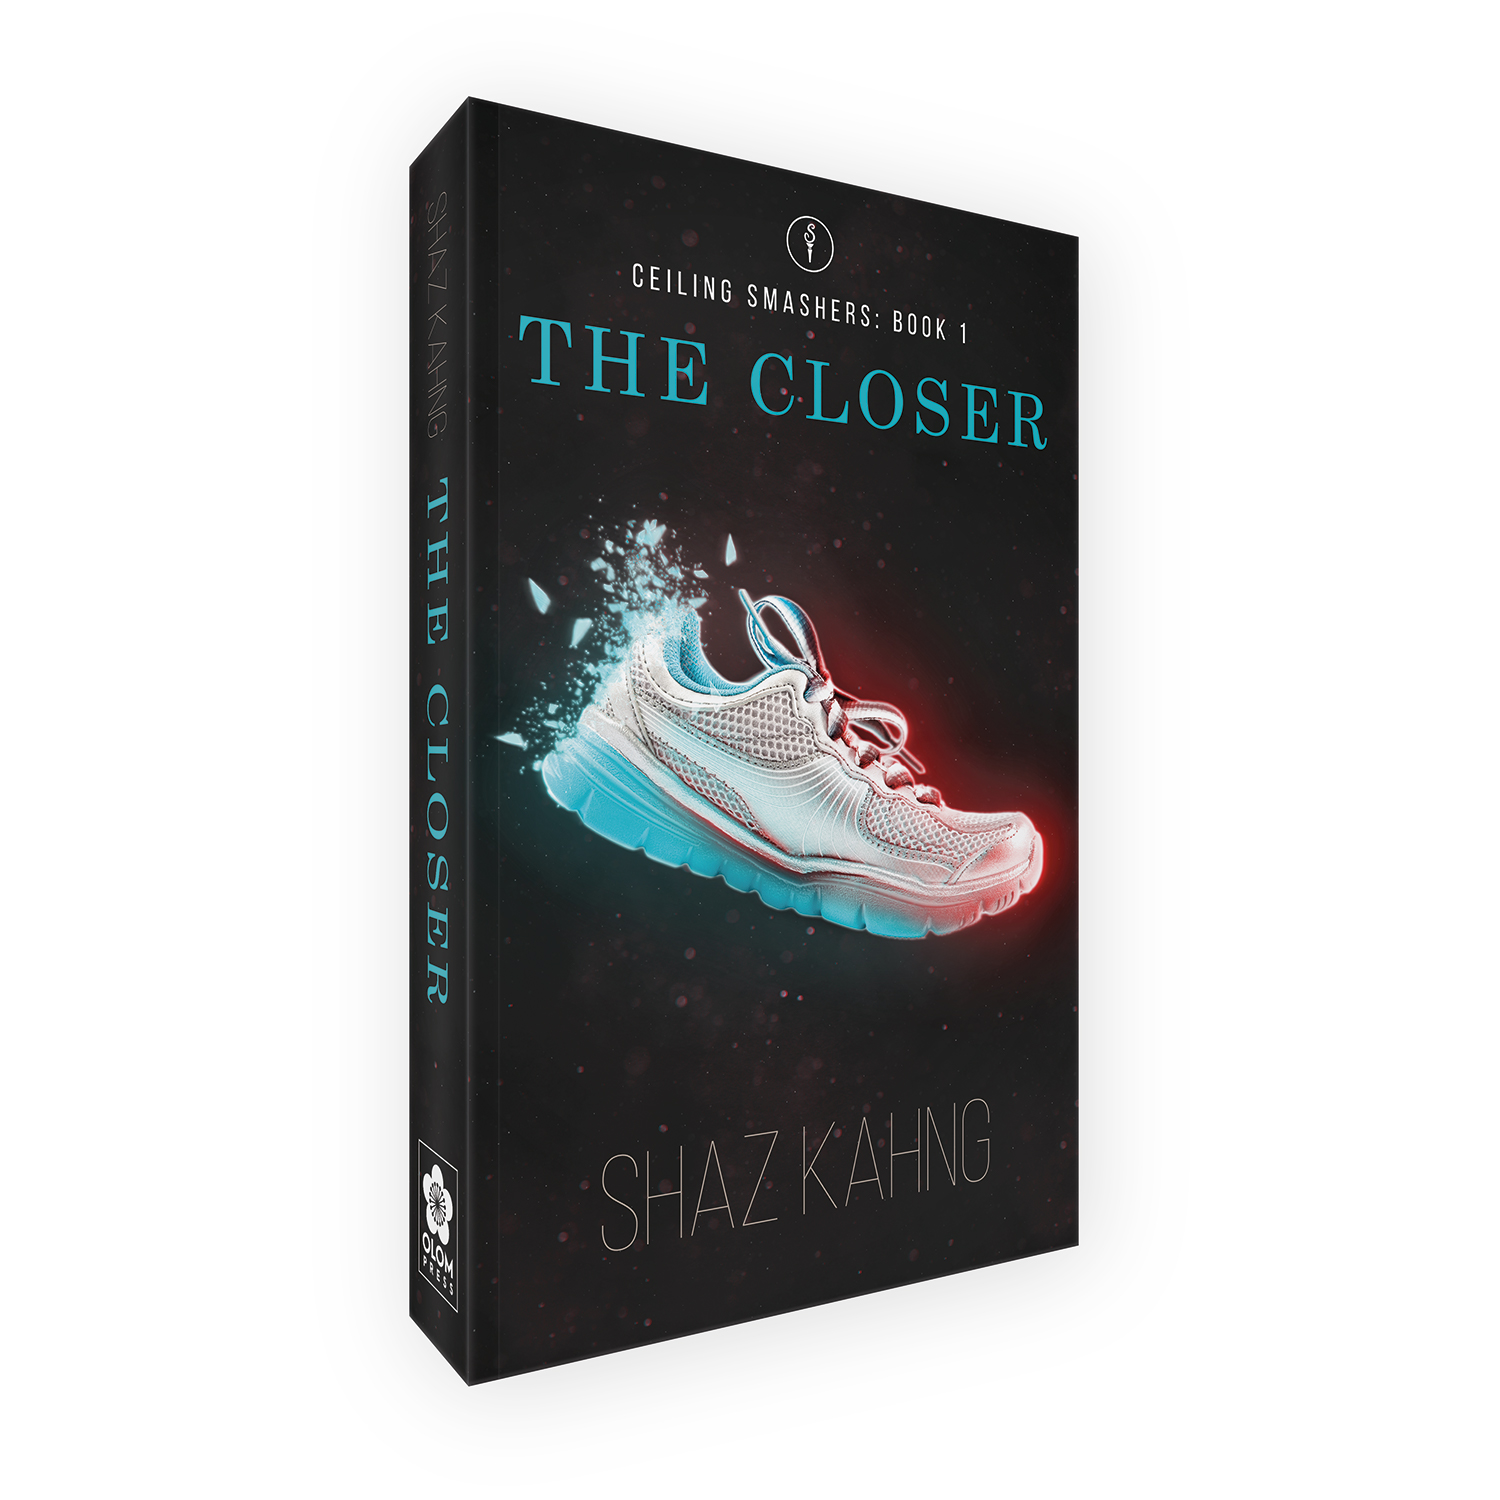 'The Closer' is a female-focussed novel set in the corporate world, by author Shaz Kahng. The book cover and interior were designed by Mark Thomas, of coverness.com. To find out more about my book design services, please visit www.coverness.com.